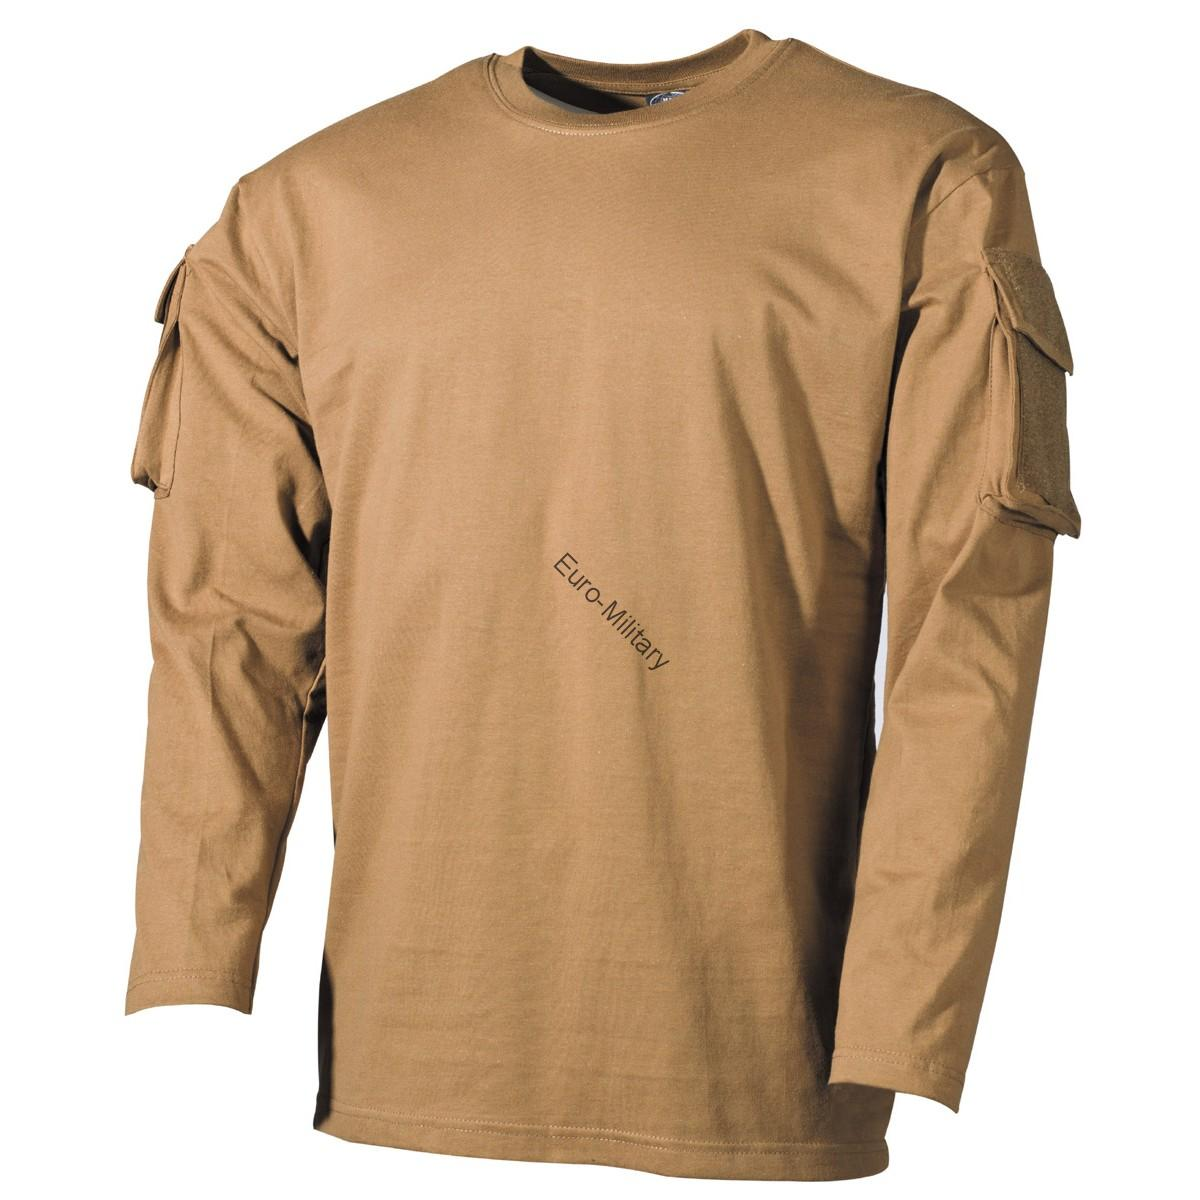 Tactical Military Army Special Ops Combat T-Shirt - Coyote - Long Sleeve